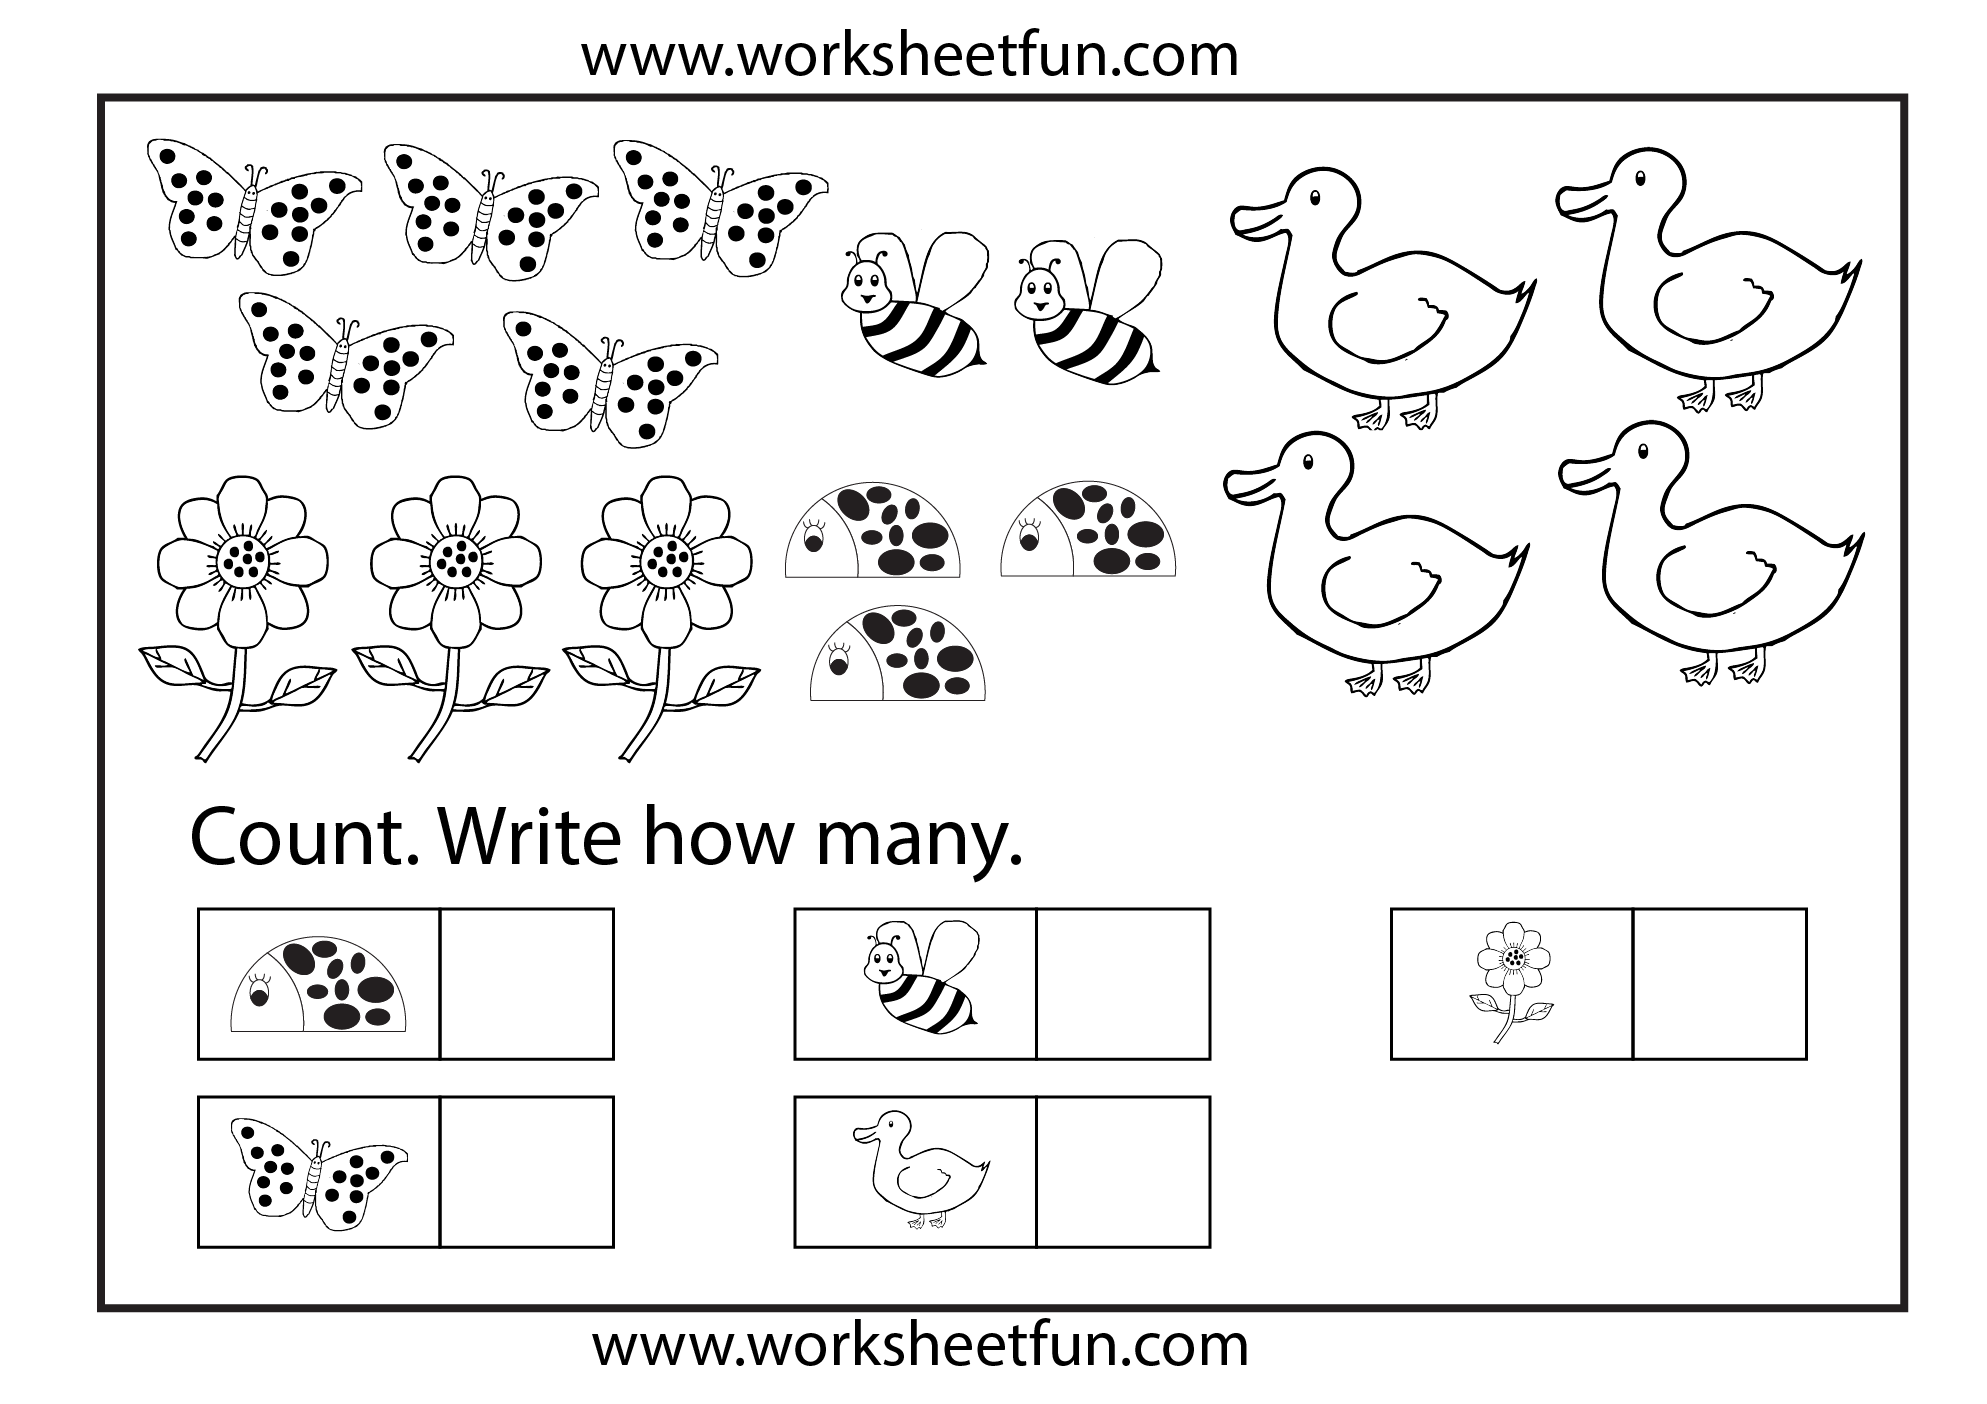 Counting Worksheets 7 Worksheets Free Printable